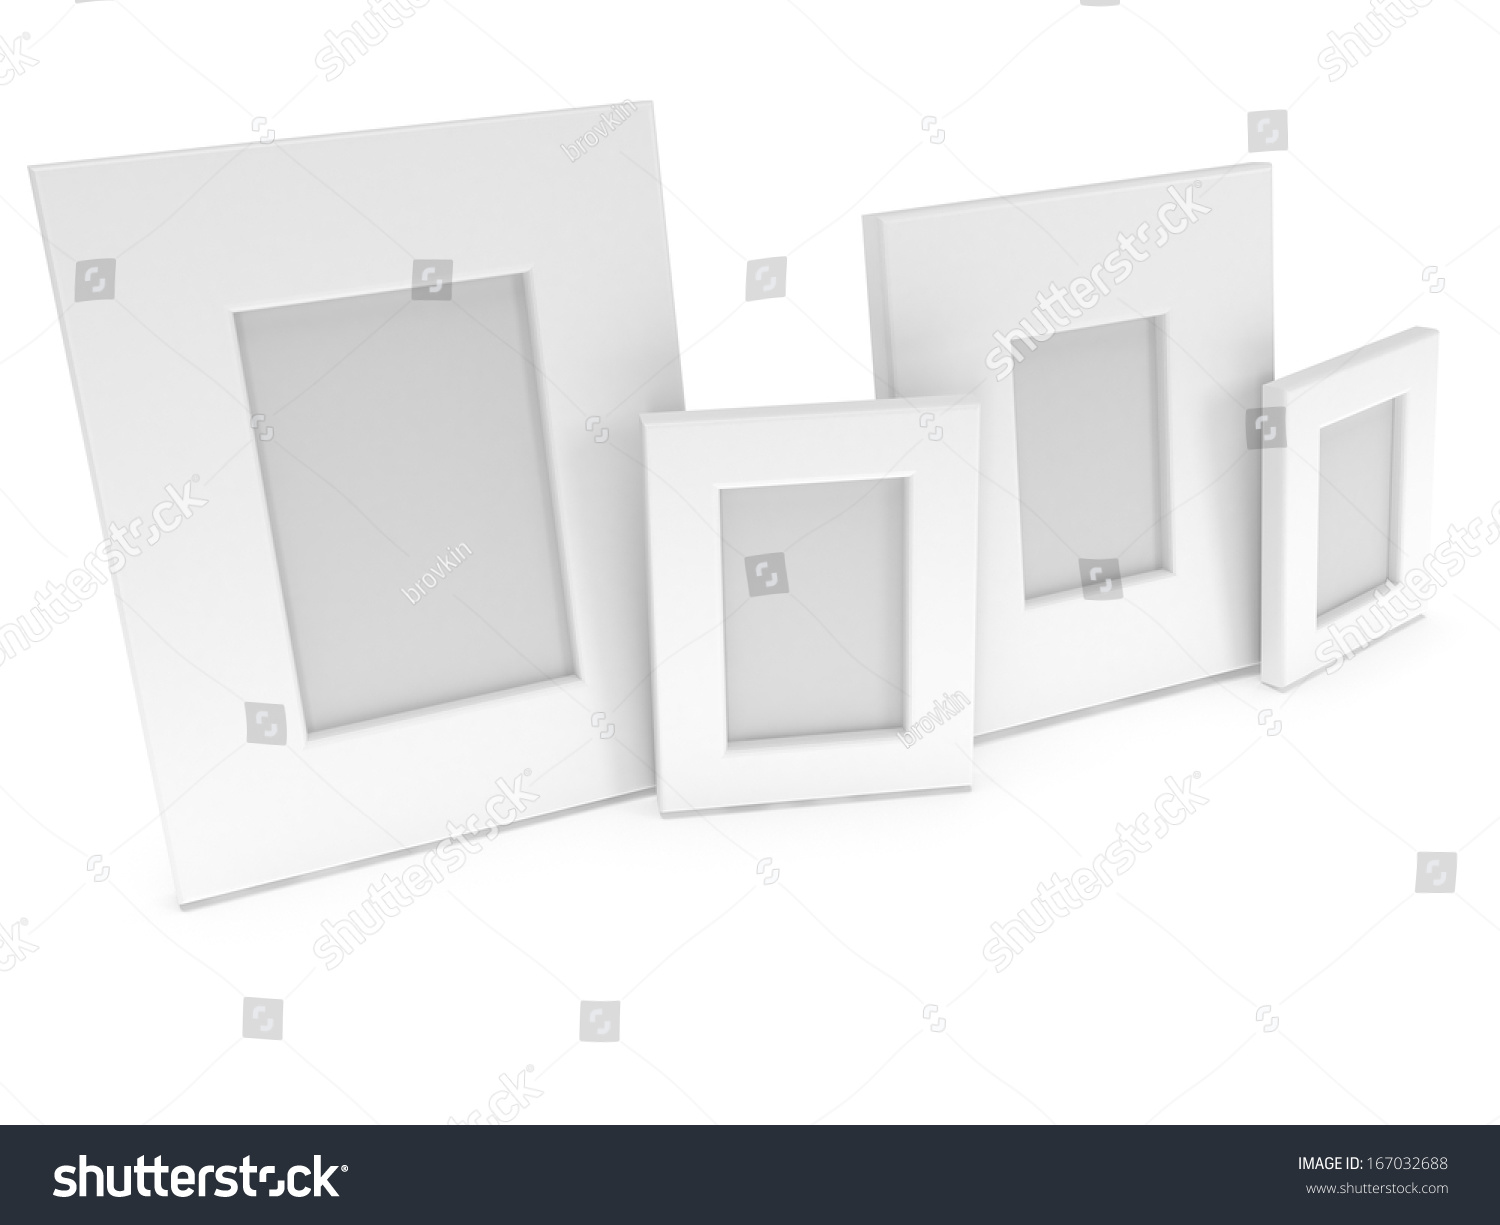 empty blank photo frames on white stock illustration 167032688 shutterstock. Black Bedroom Furniture Sets. Home Design Ideas